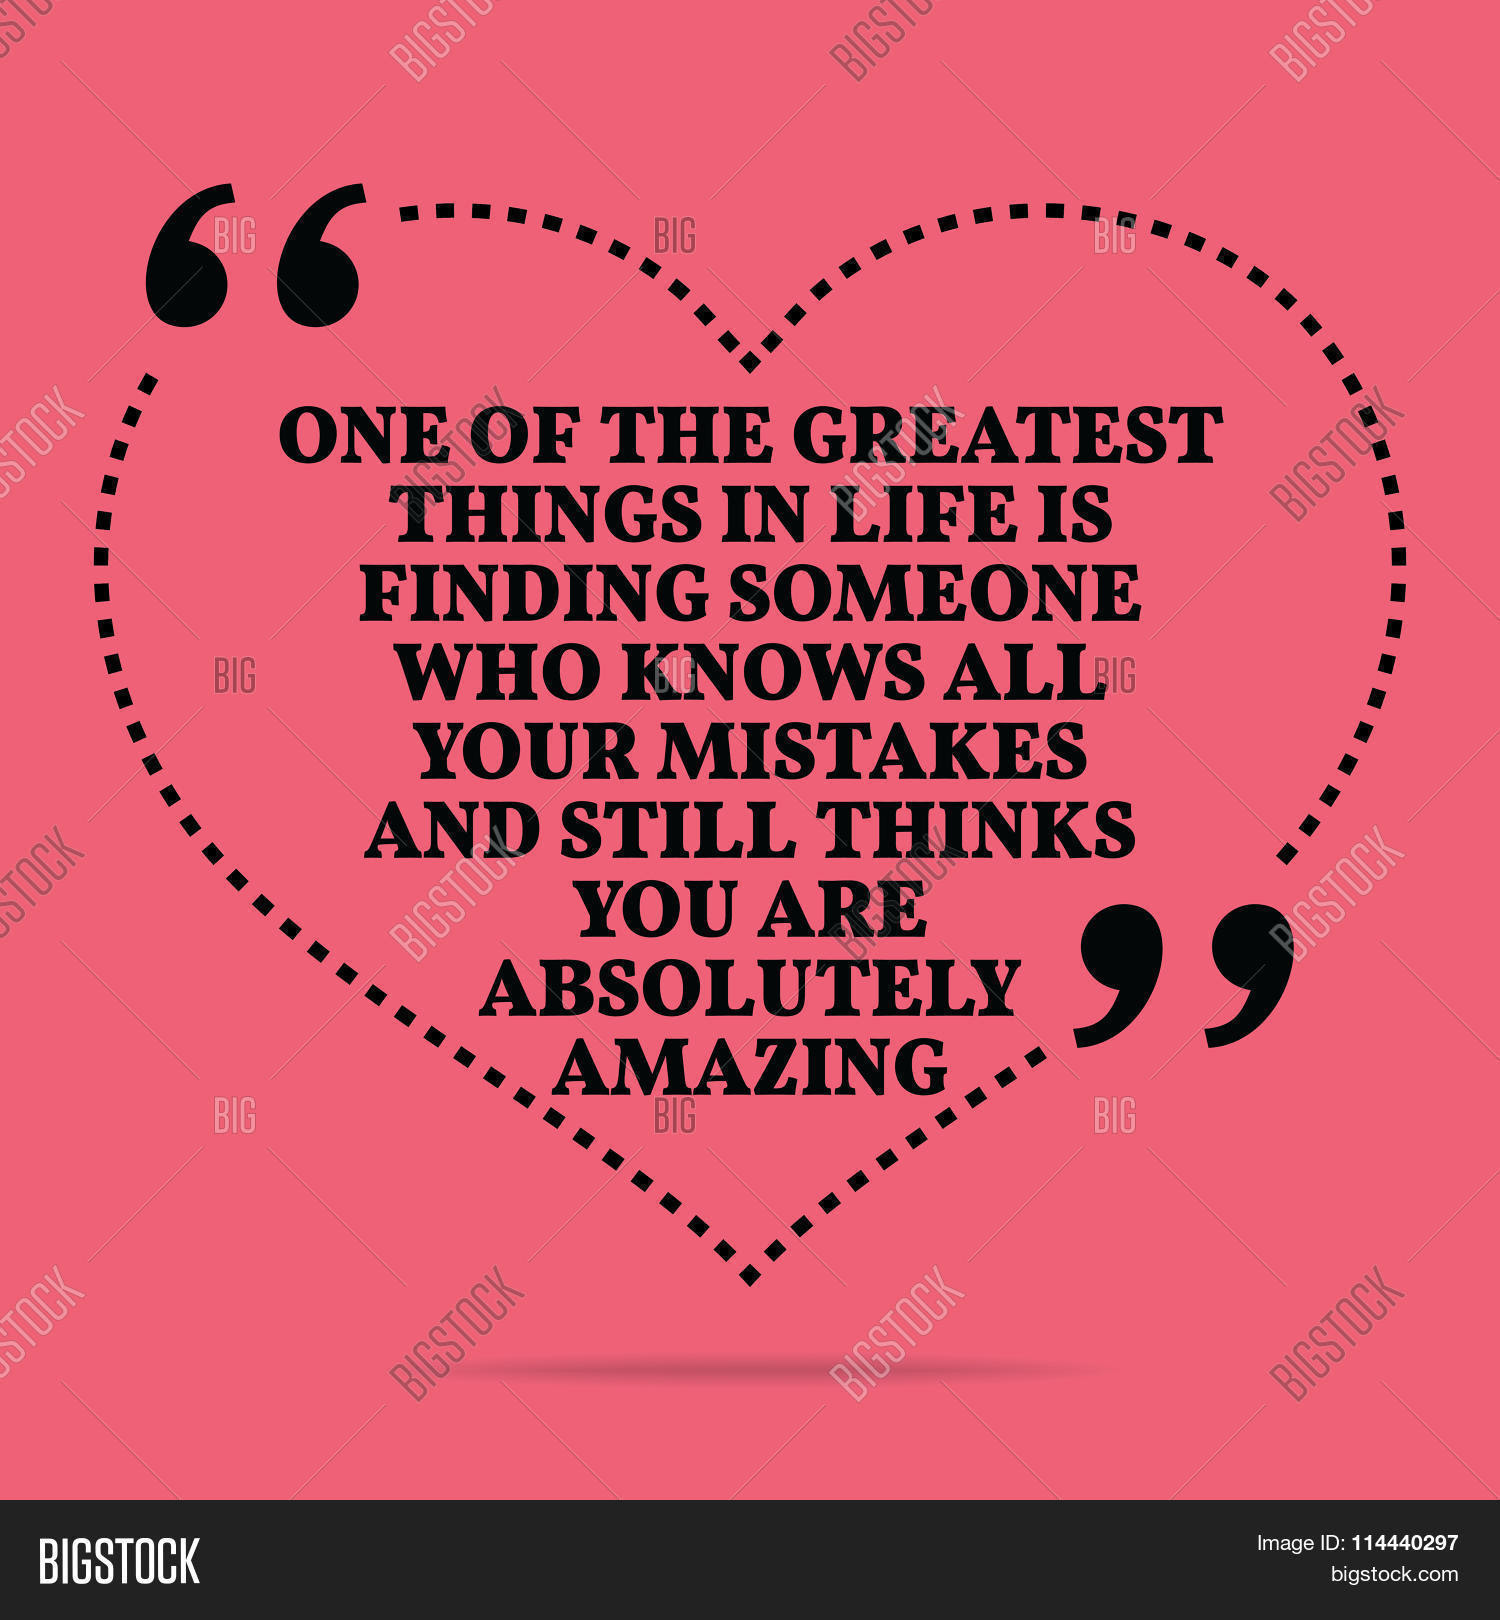 Inspirational Love Marriage Quote e The Greatest Things In Life Is Finding Someone Who